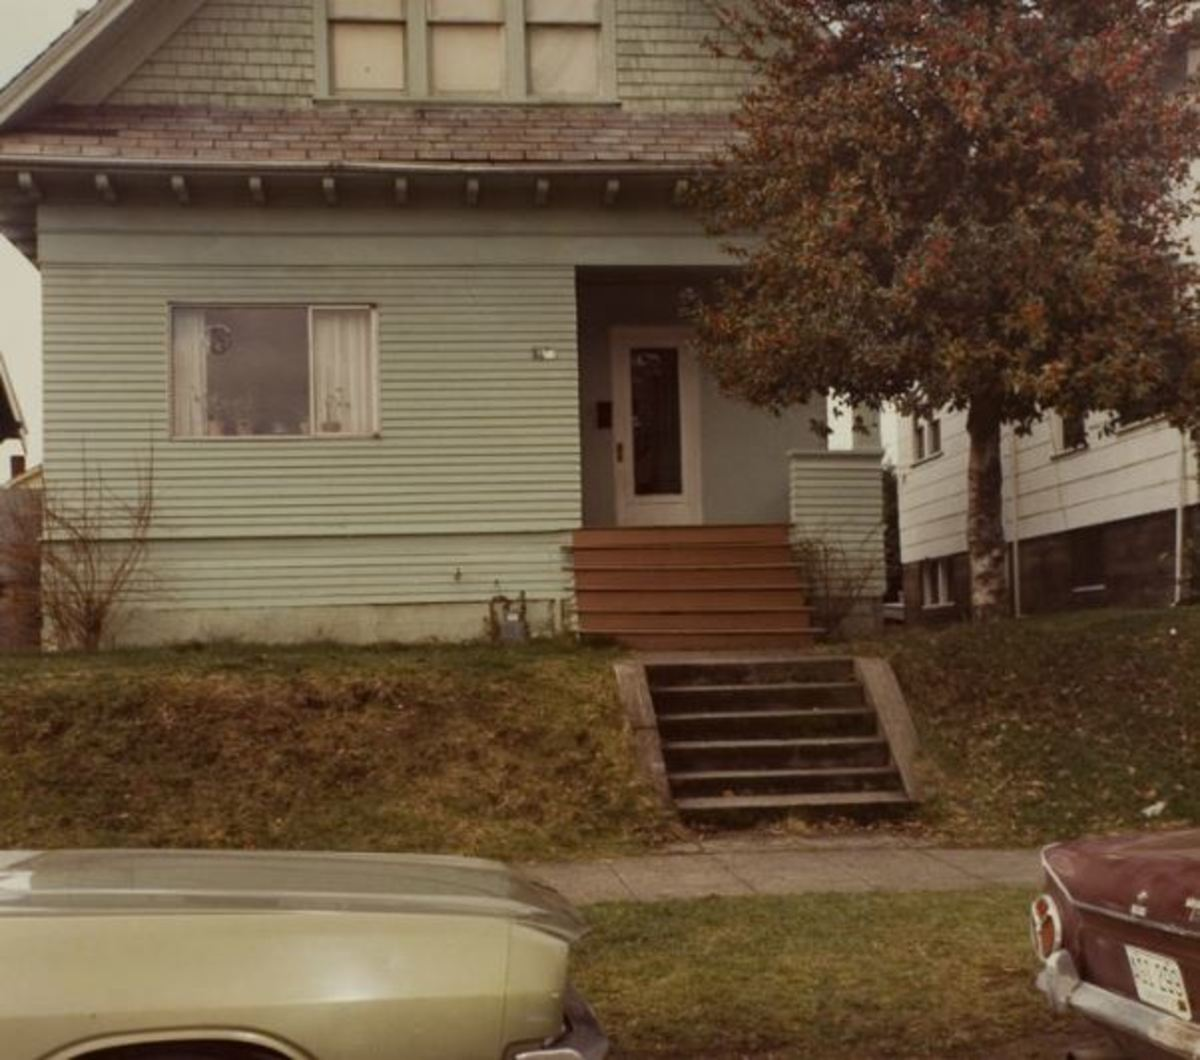 The home at 5517 12th Street NE in Seattle, where Lynda Healy resided with her roommates.